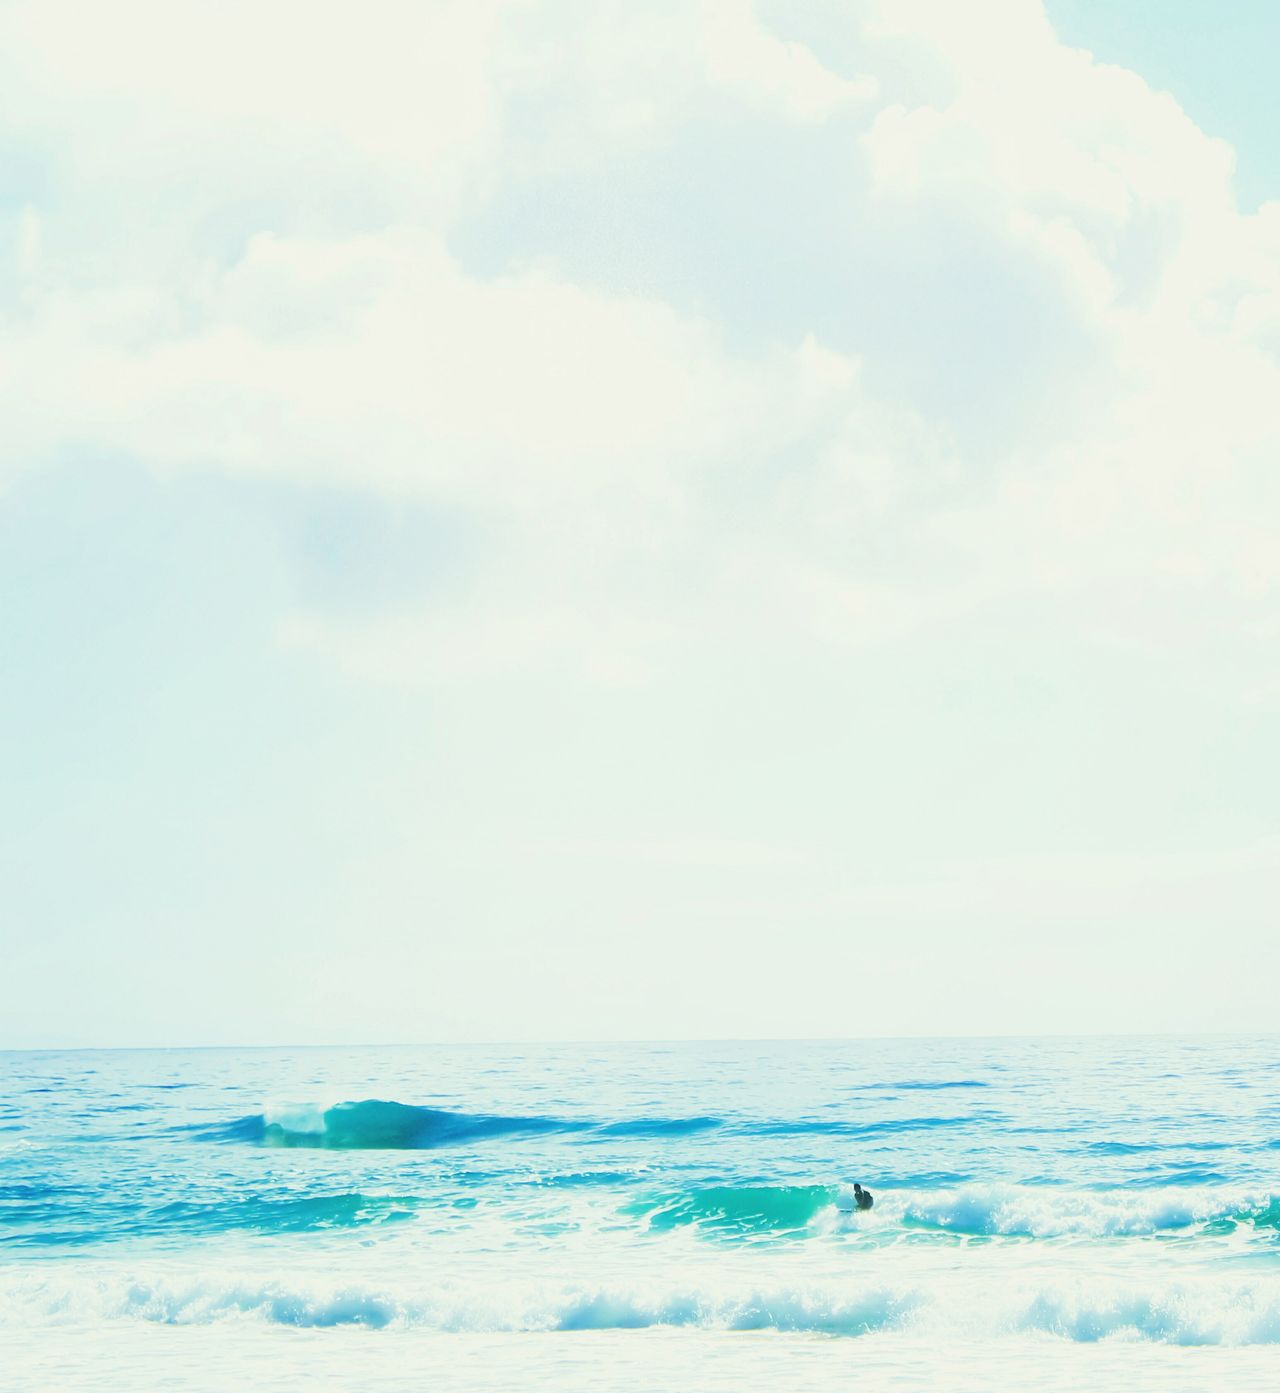 Water Bright Blue Water Hawaii Scenery Surf Surfing Kauai♡ Open Edit Clear Skies Water_collection Beach Beauty Ocean View Scenic View